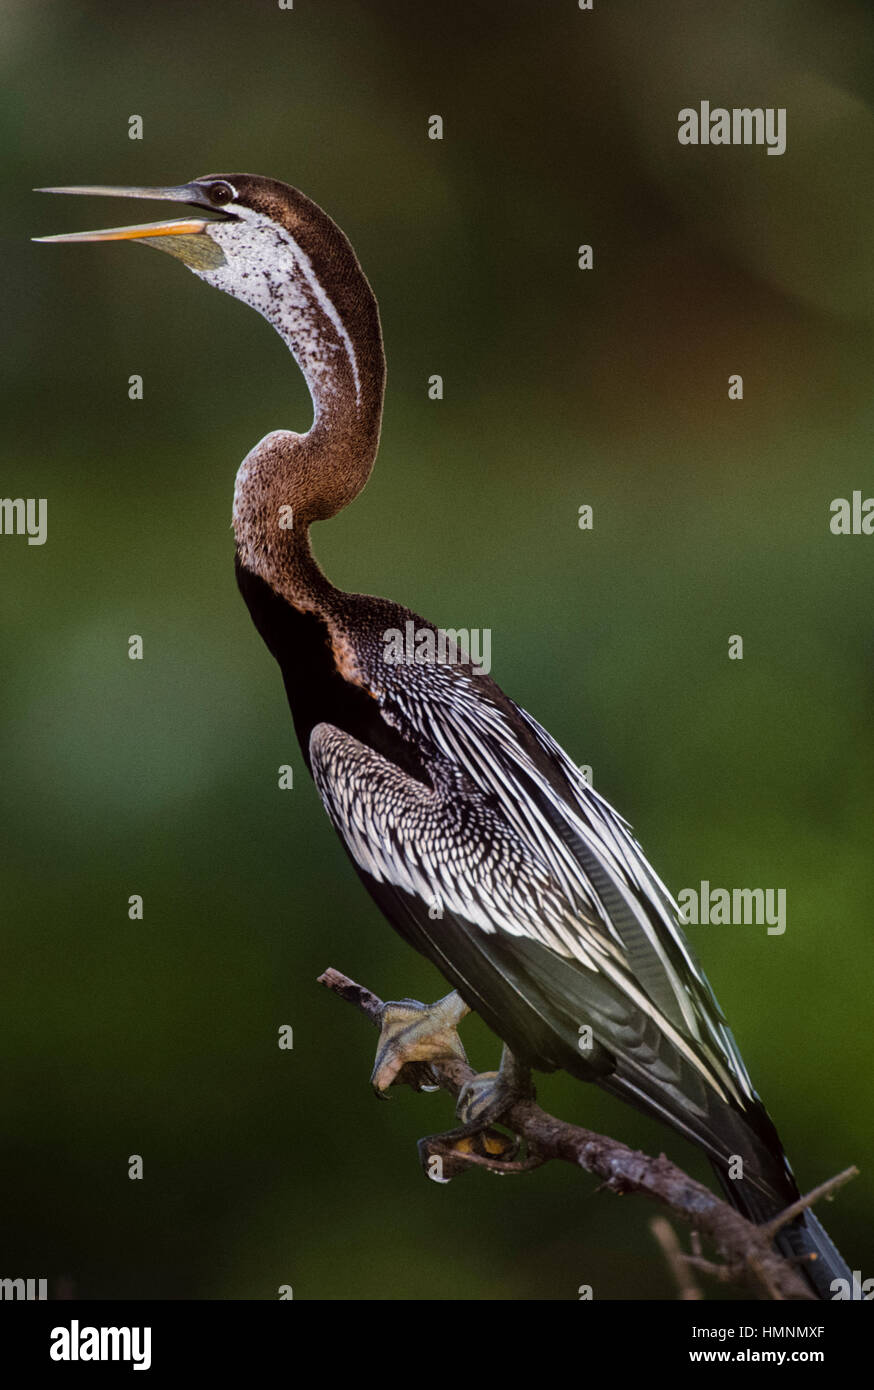 Oriental darter or Indian darter, (Anhinga melanogaster), cooling down with beak open,Keoladeo Ghana National Park,Bharatpur,Rajasthan, - Stock Image